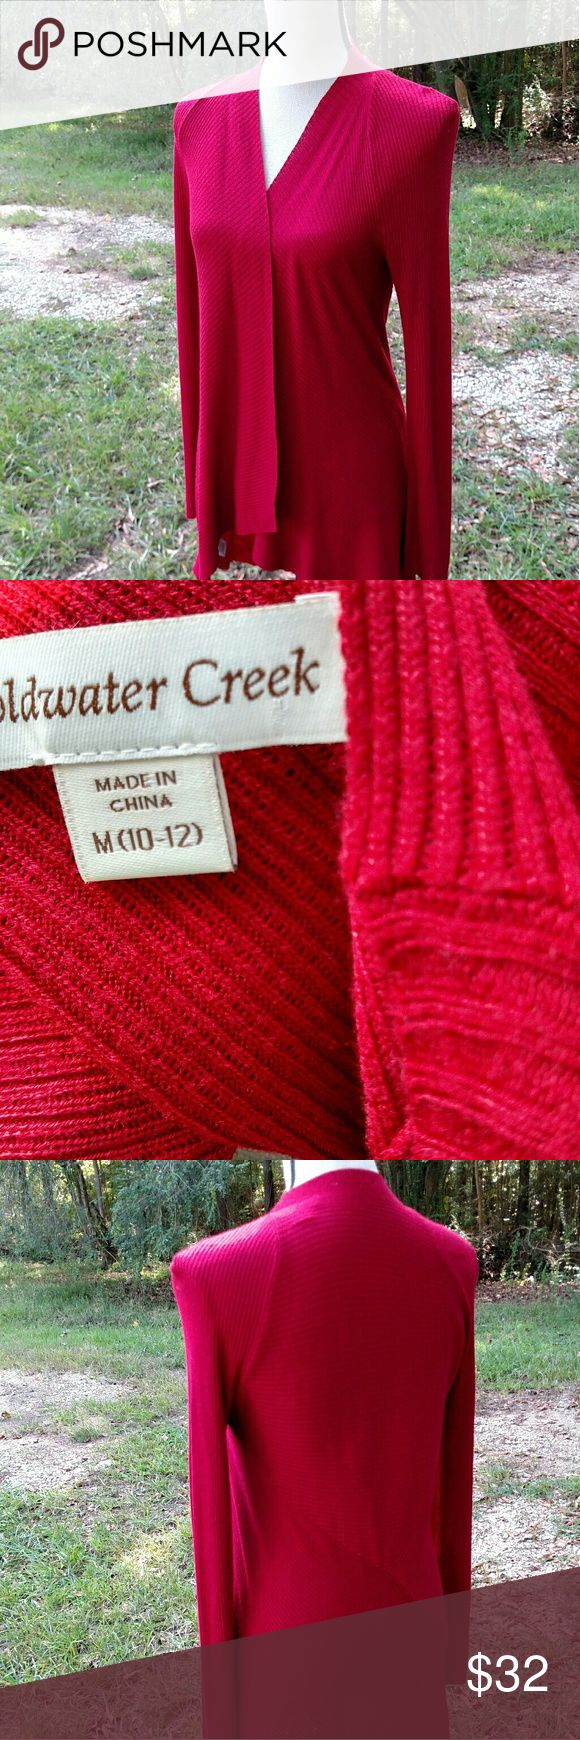 Coldwater Creek cardigan/open Come fly away.  Coldwater Creek open front  Like new condition.  Relaxed fit.  Beautiful cranberry red.  Size M (10-12).  Hits mid-hip.  Soft drape. Coldwater Creek Sweaters Cardigans